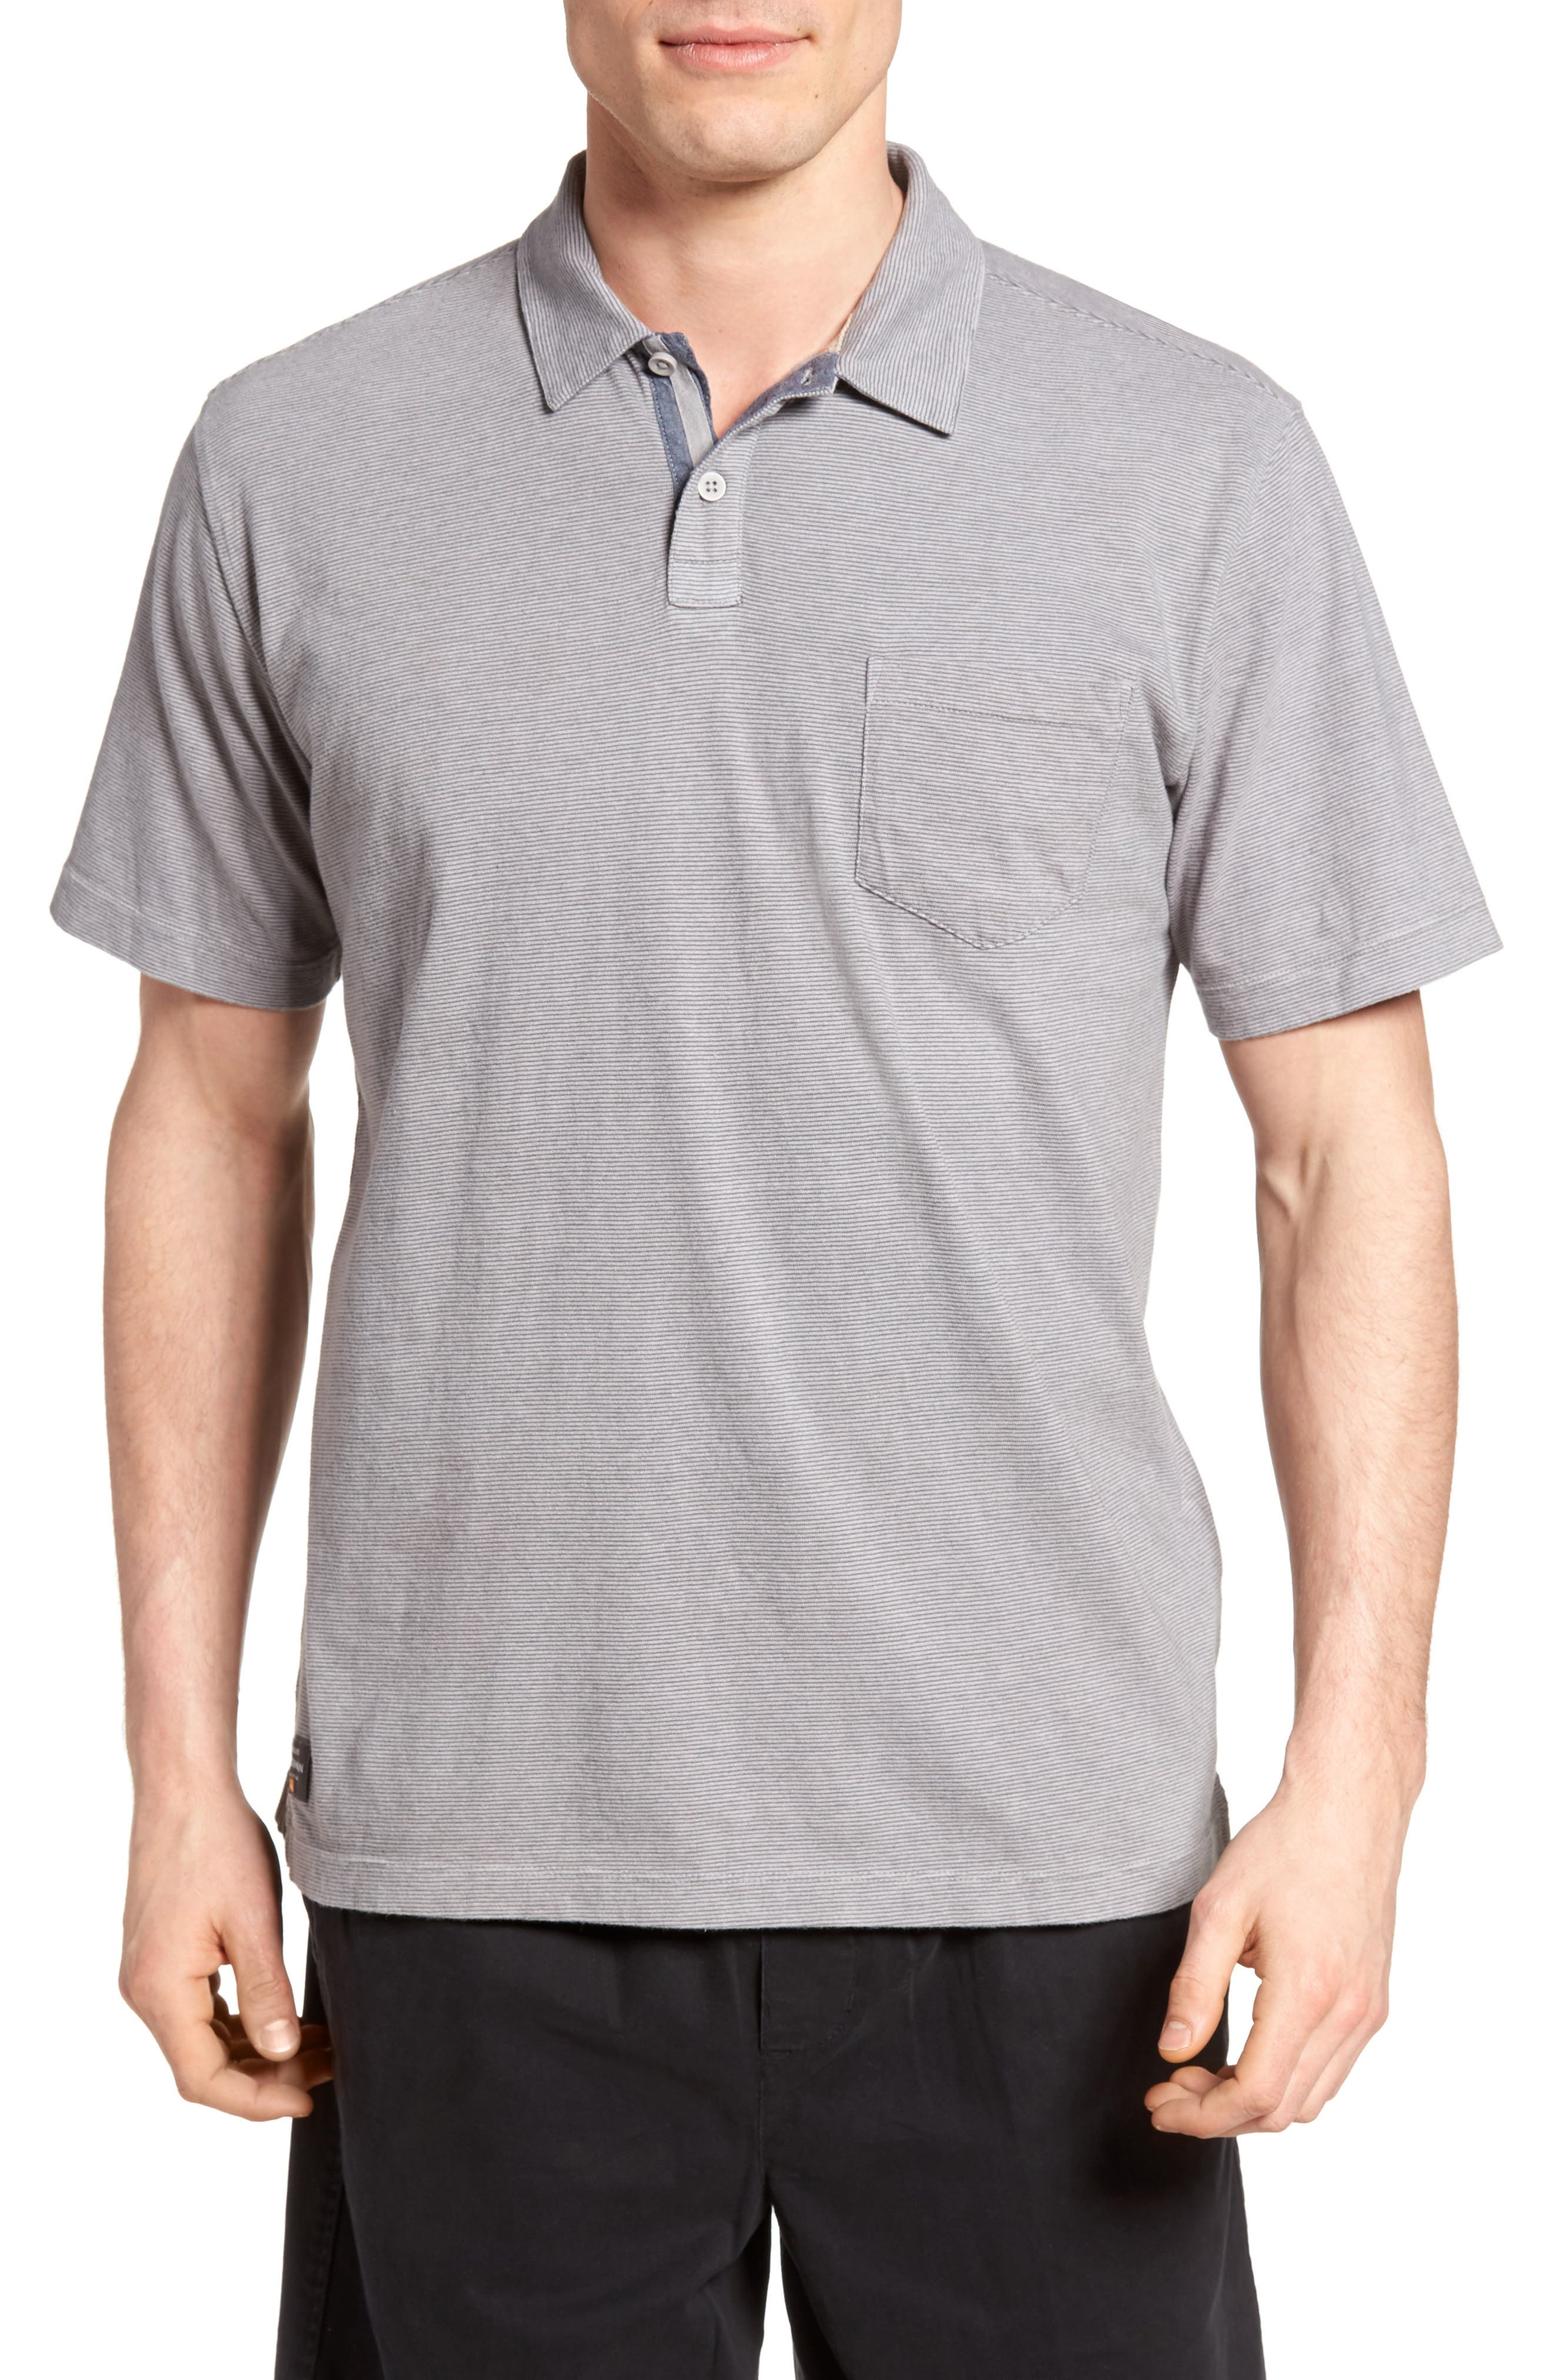 Quiksilver Waterman Collection Strolo 6 Pocket Polo